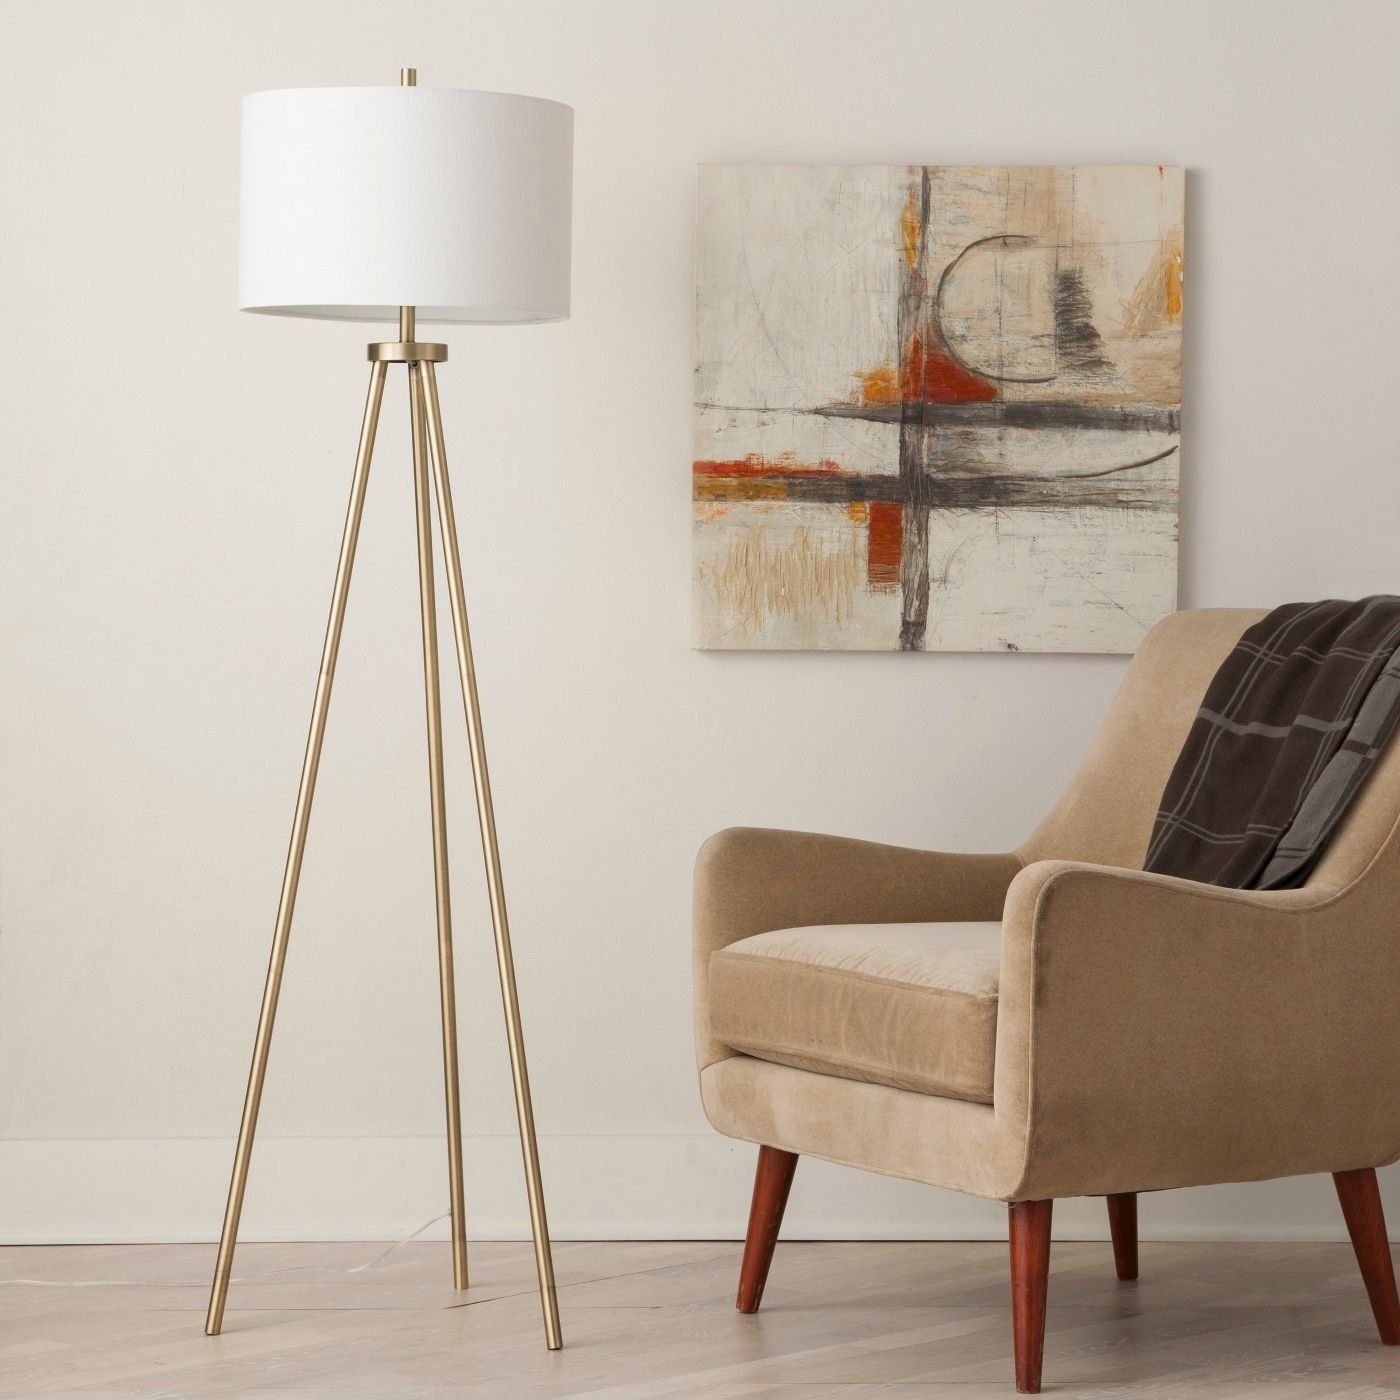 The lamp, which is taller than an arm chair, has three long, thin brass legs, and a white circular lampshade at the top